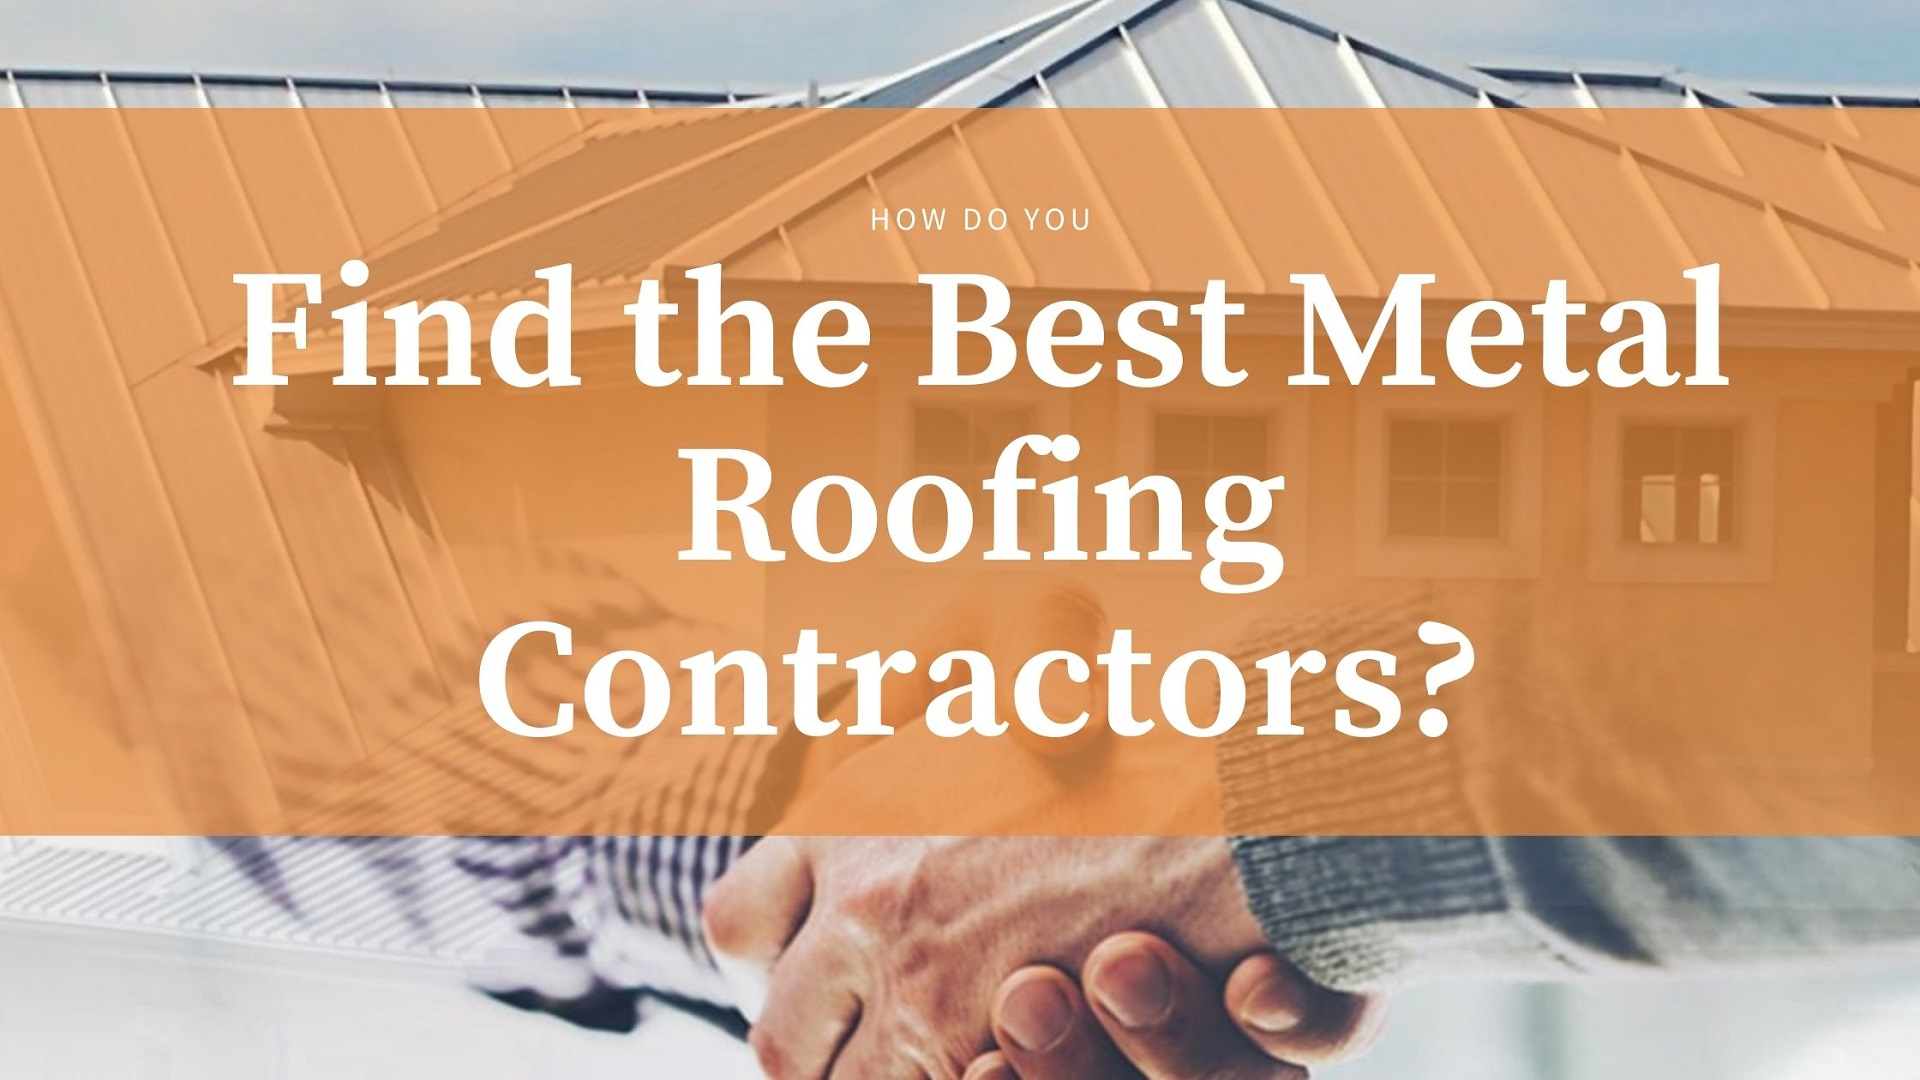 How Do You Find the Best Metal Roofing Contractors?